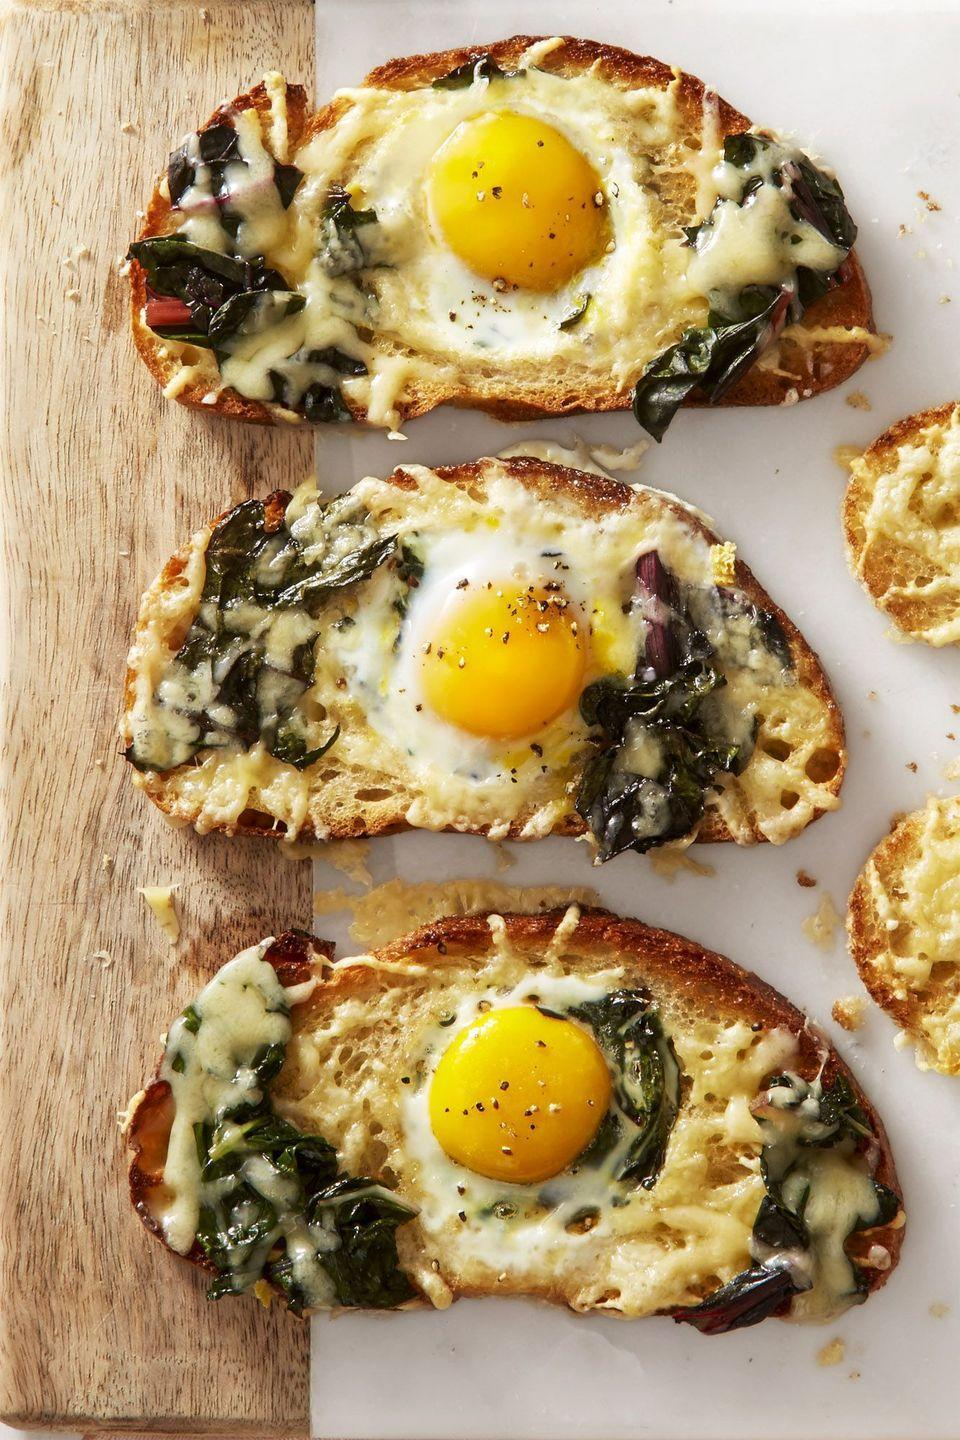 """<p>This is the classiest egg on toast we've ever seen. Sautéed chard for the win!</p><p><em><a href=""""https://www.goodhousekeeping.com/food-recipes/a43666/chard-gruyere-eggs-in-the-hole-recipe/"""" rel=""""nofollow noopener"""" target=""""_blank"""" data-ylk=""""slk:Get the recipe for Chard and Gruyère Eggs in the Hole »"""" class=""""link rapid-noclick-resp"""">Get the recipe for Chard and Gruyère Eggs in the Hole »</a></em></p>"""